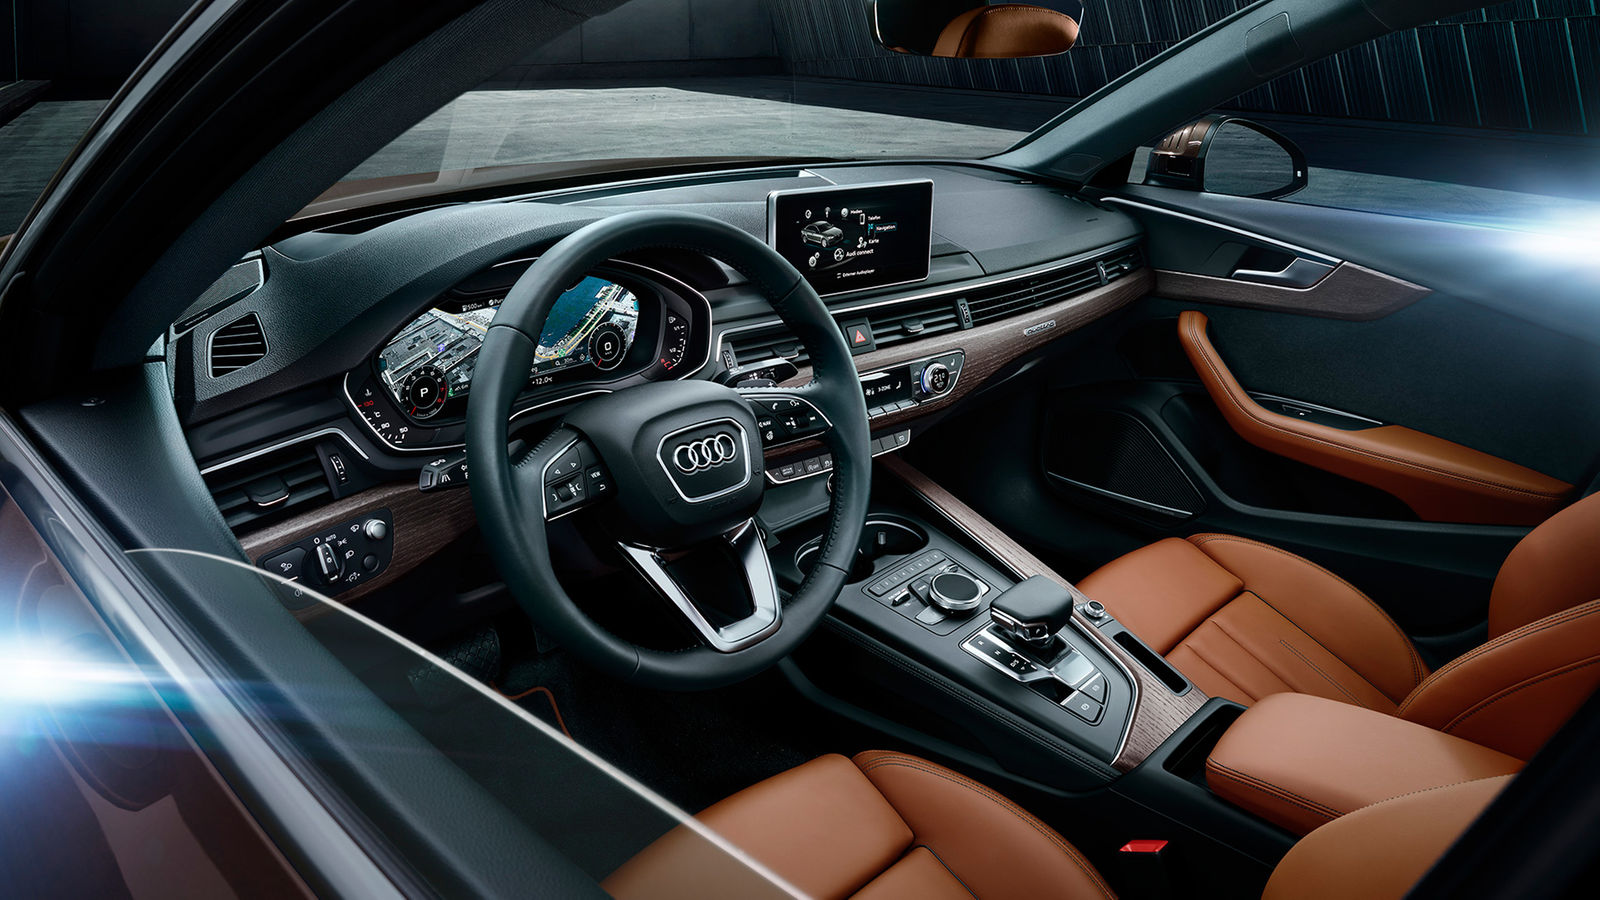 2018 Audi A4 Technology Clarks Summit PA | Wyoming Valley Audi